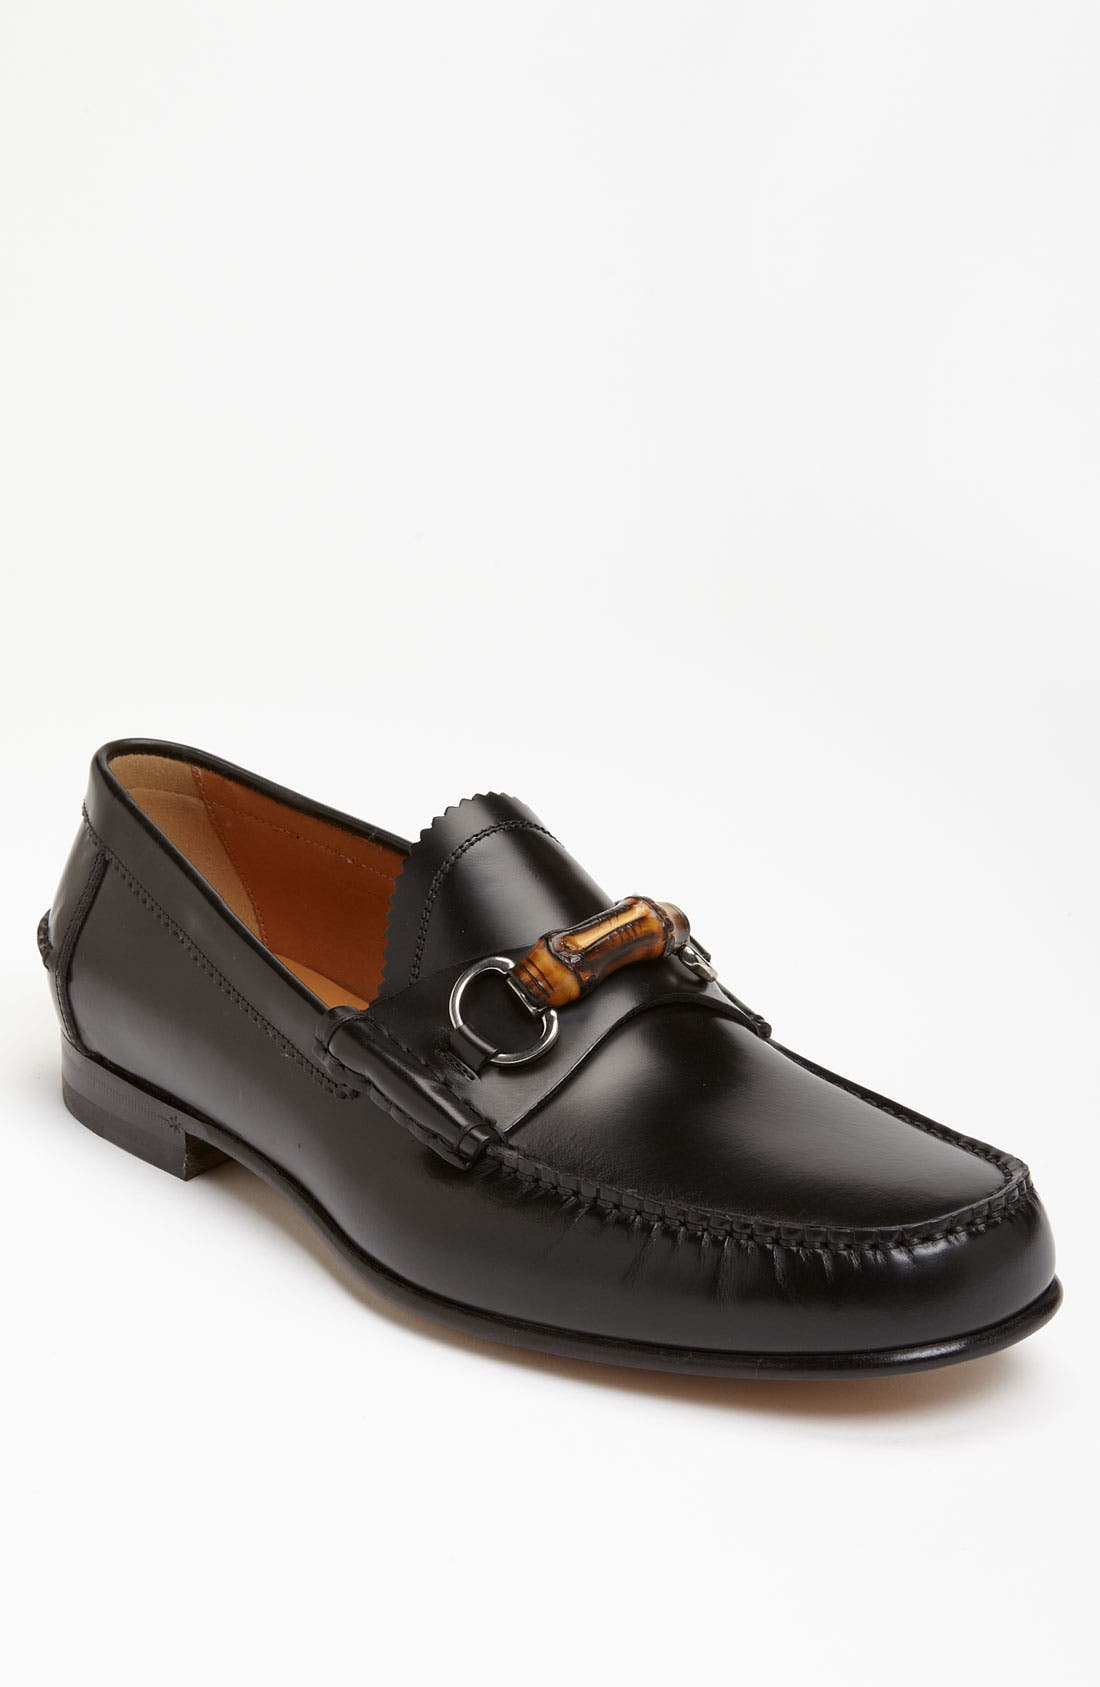 Main Image - Gucci 'Millet' Loafer